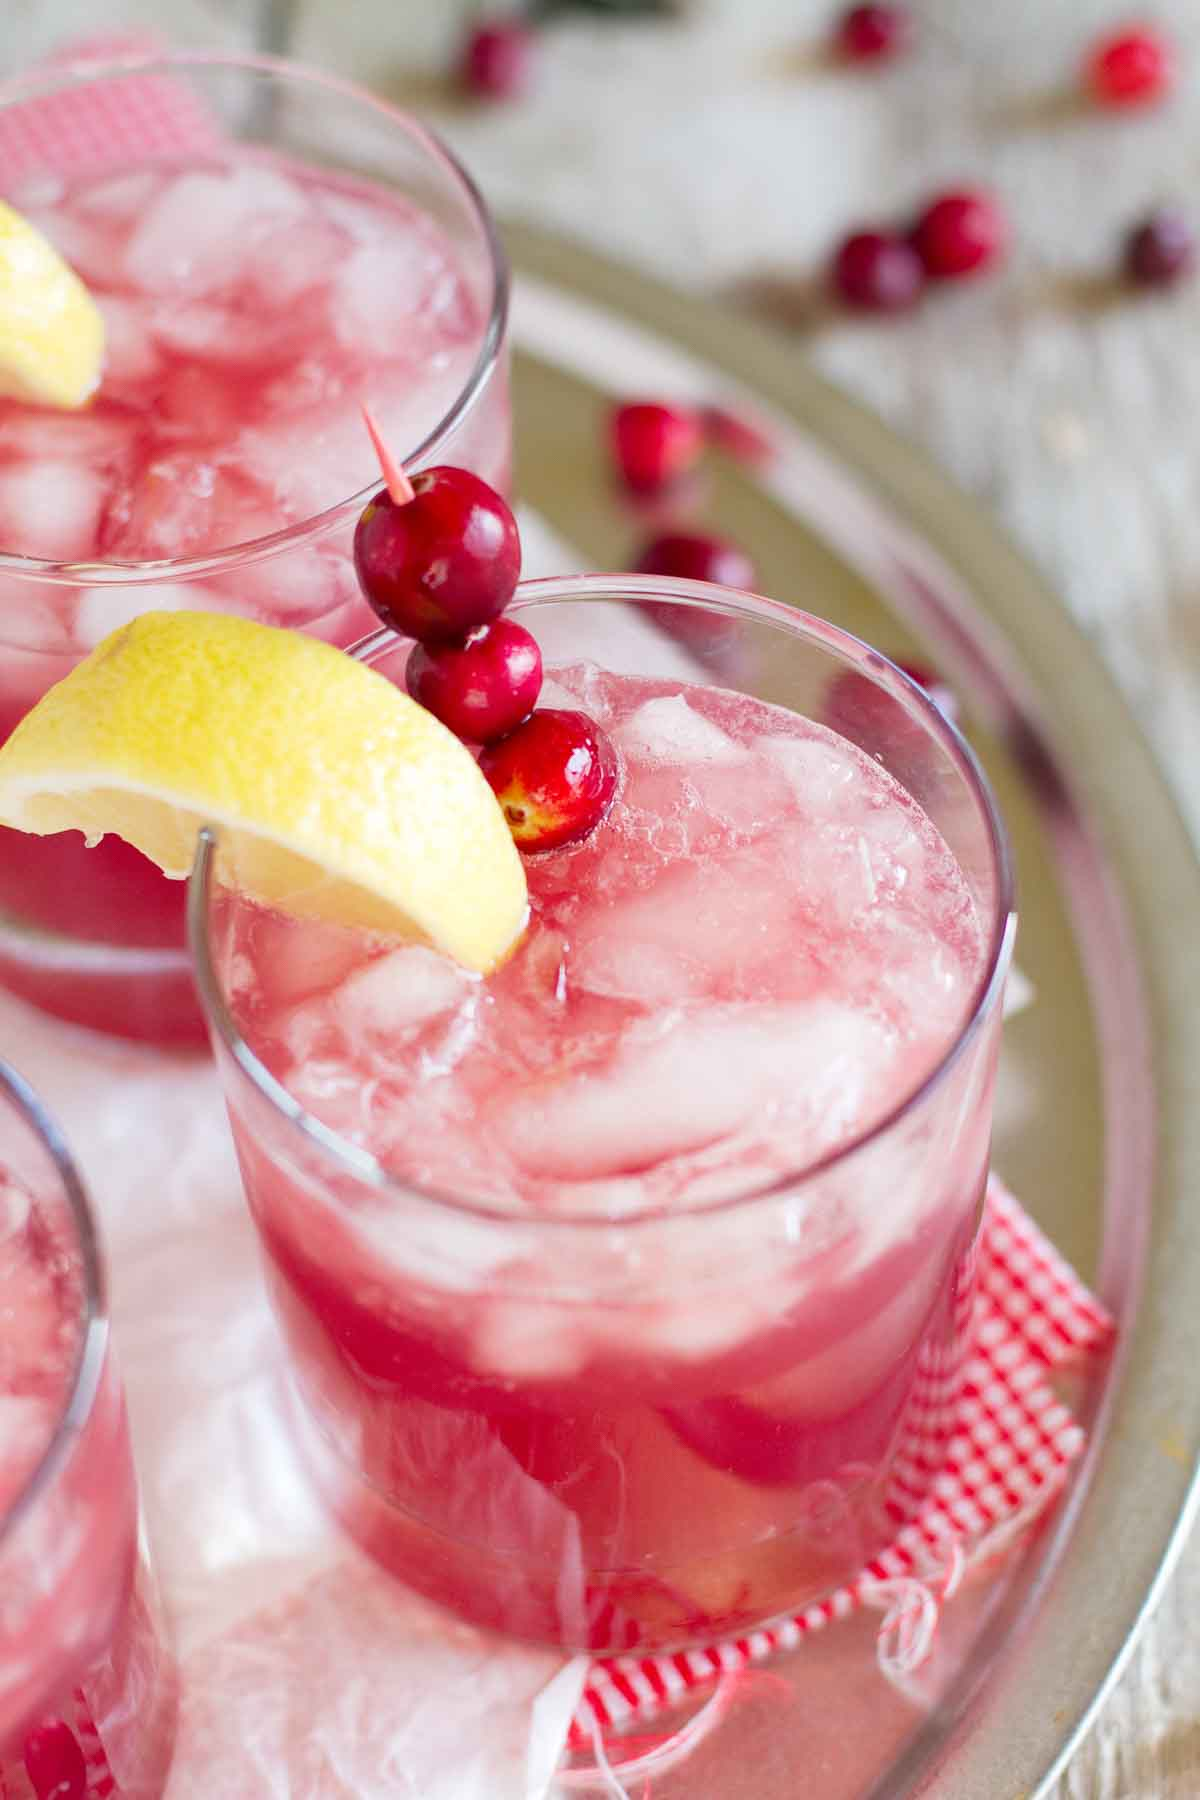 Sparkling Cranberry Punch in a glass with a lemon slice and fresh cranberries